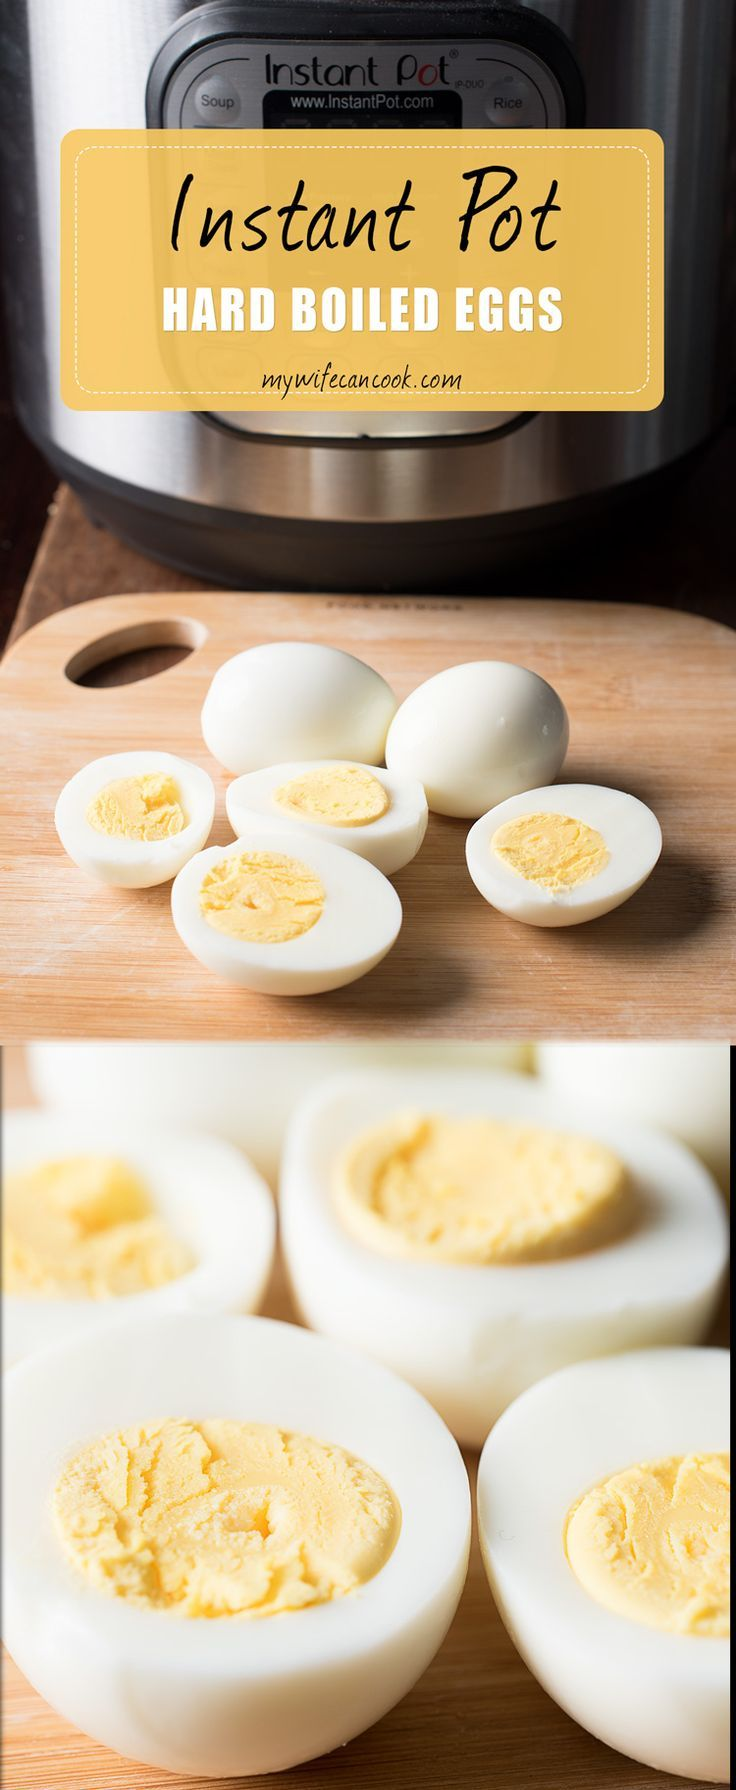 If you hate peeling hard boiled eggs then these instant pot hard boiled eggs are just what you are looking for. Instant pot Hard-boiled eggs couldn't be easier and they're definitely easier to peel. We all hate when the egg shell adheres to the egg and ju